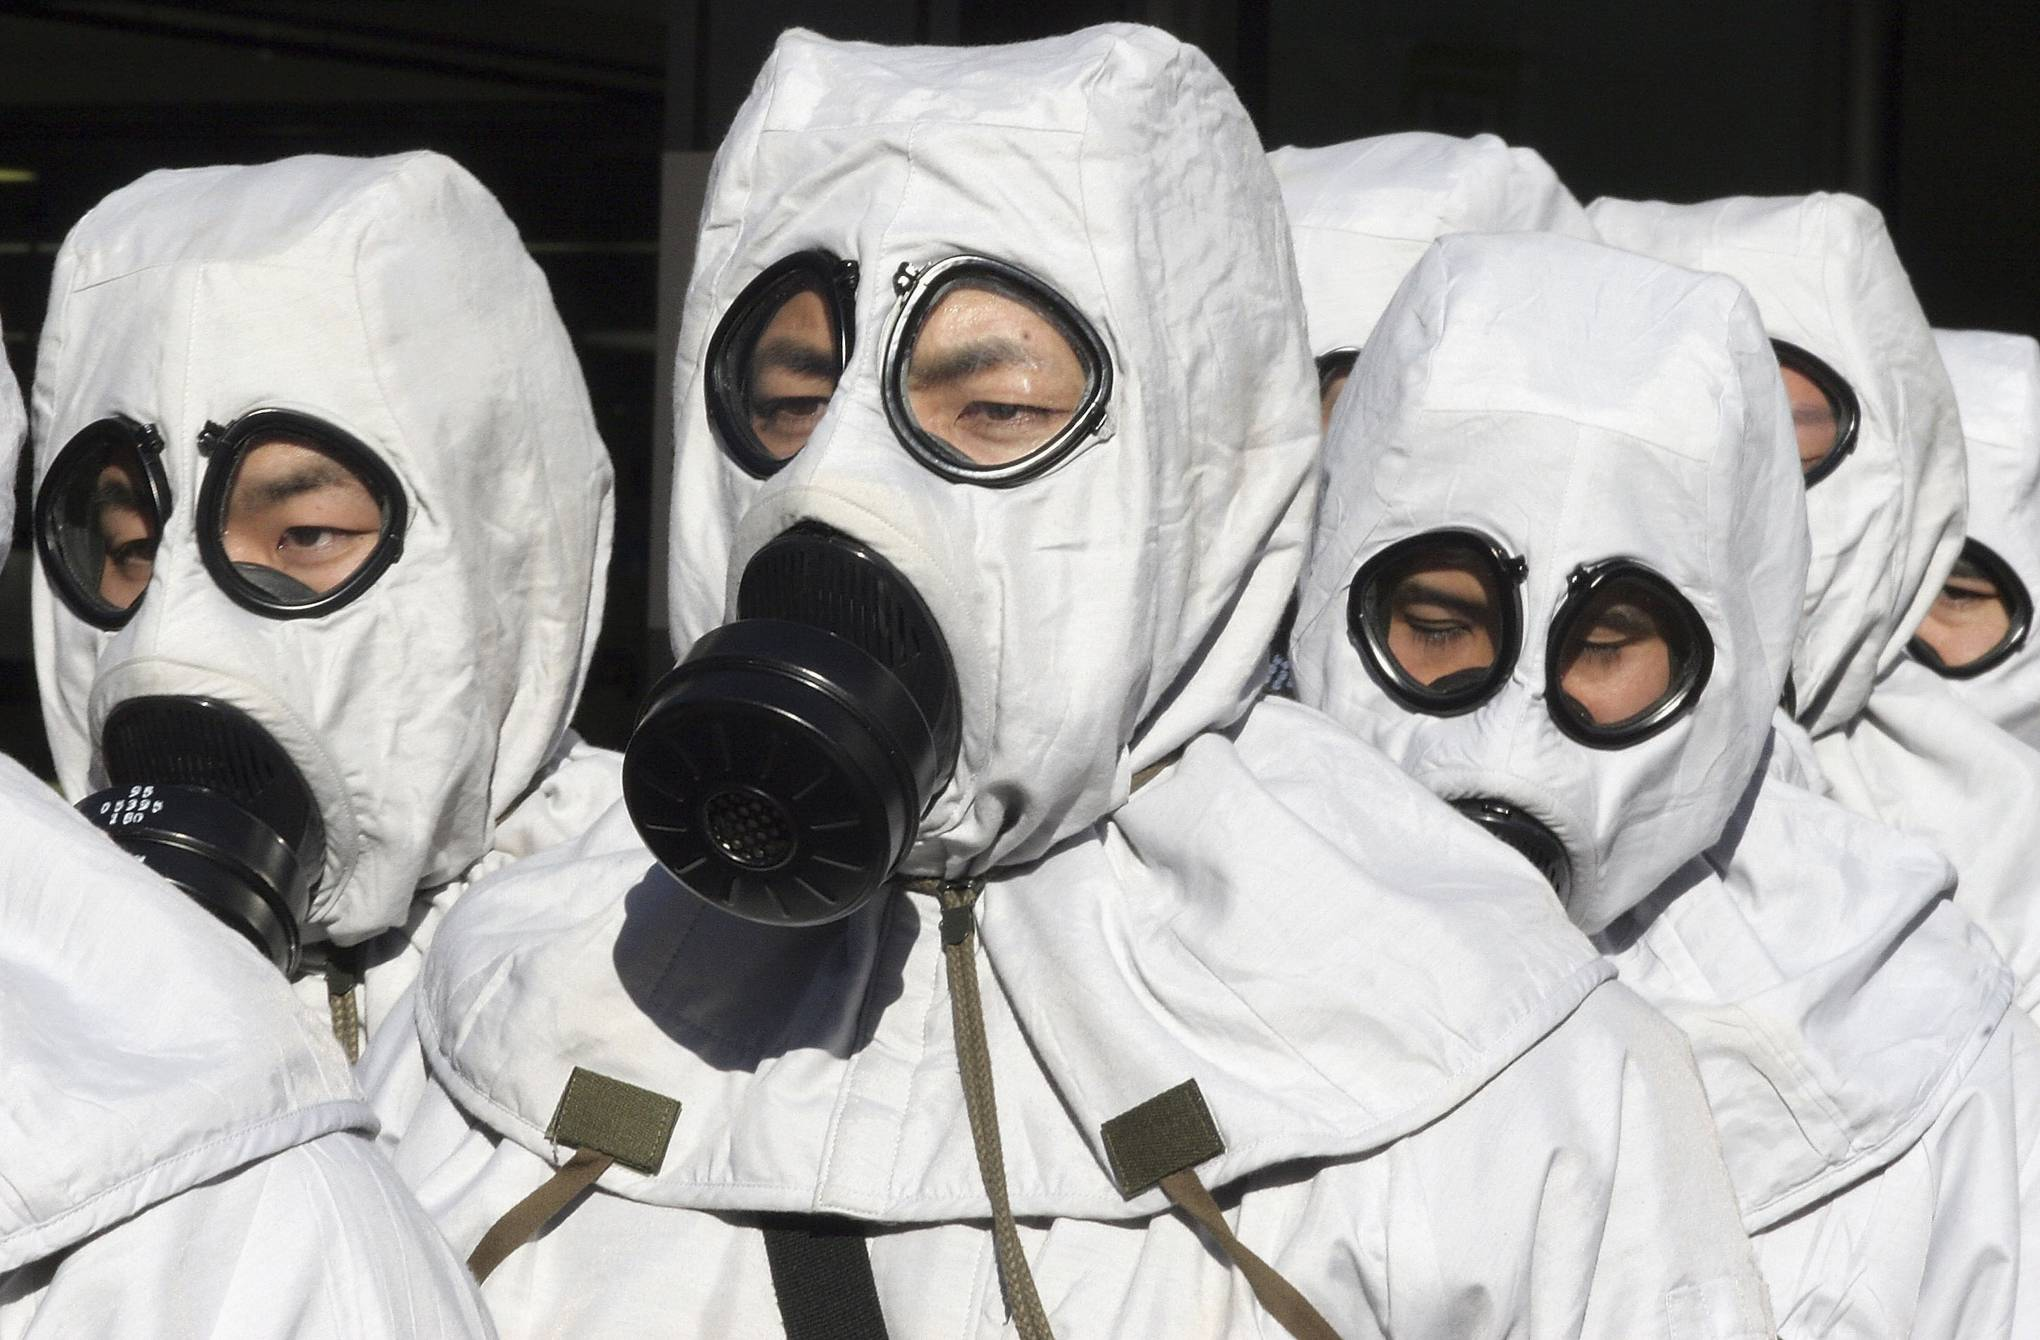 Japan is hoarding viruses to fight bioterrorism at the 2020 Olympics